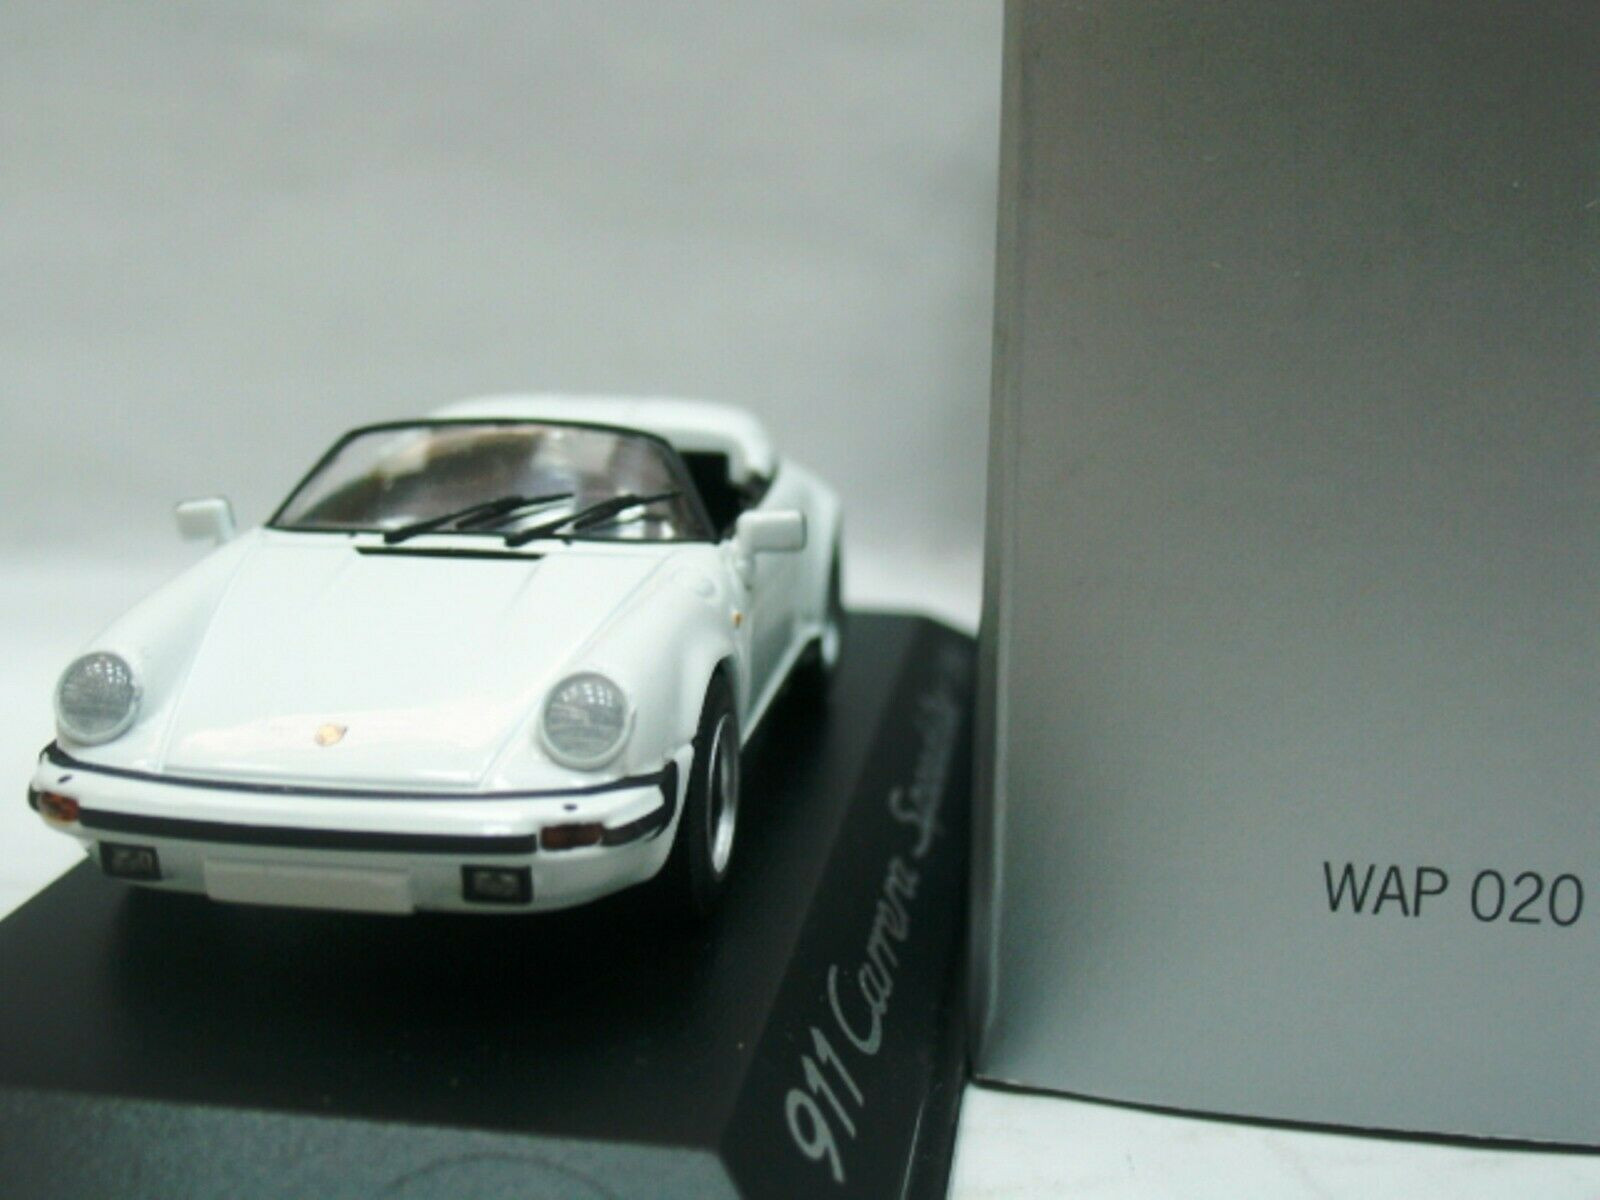 WOW  EXTREMELY RARE Porsche 930 1989 911 G-Model Speedster blanc 1 43 Minichamps  jusqu'à 70% de réduction